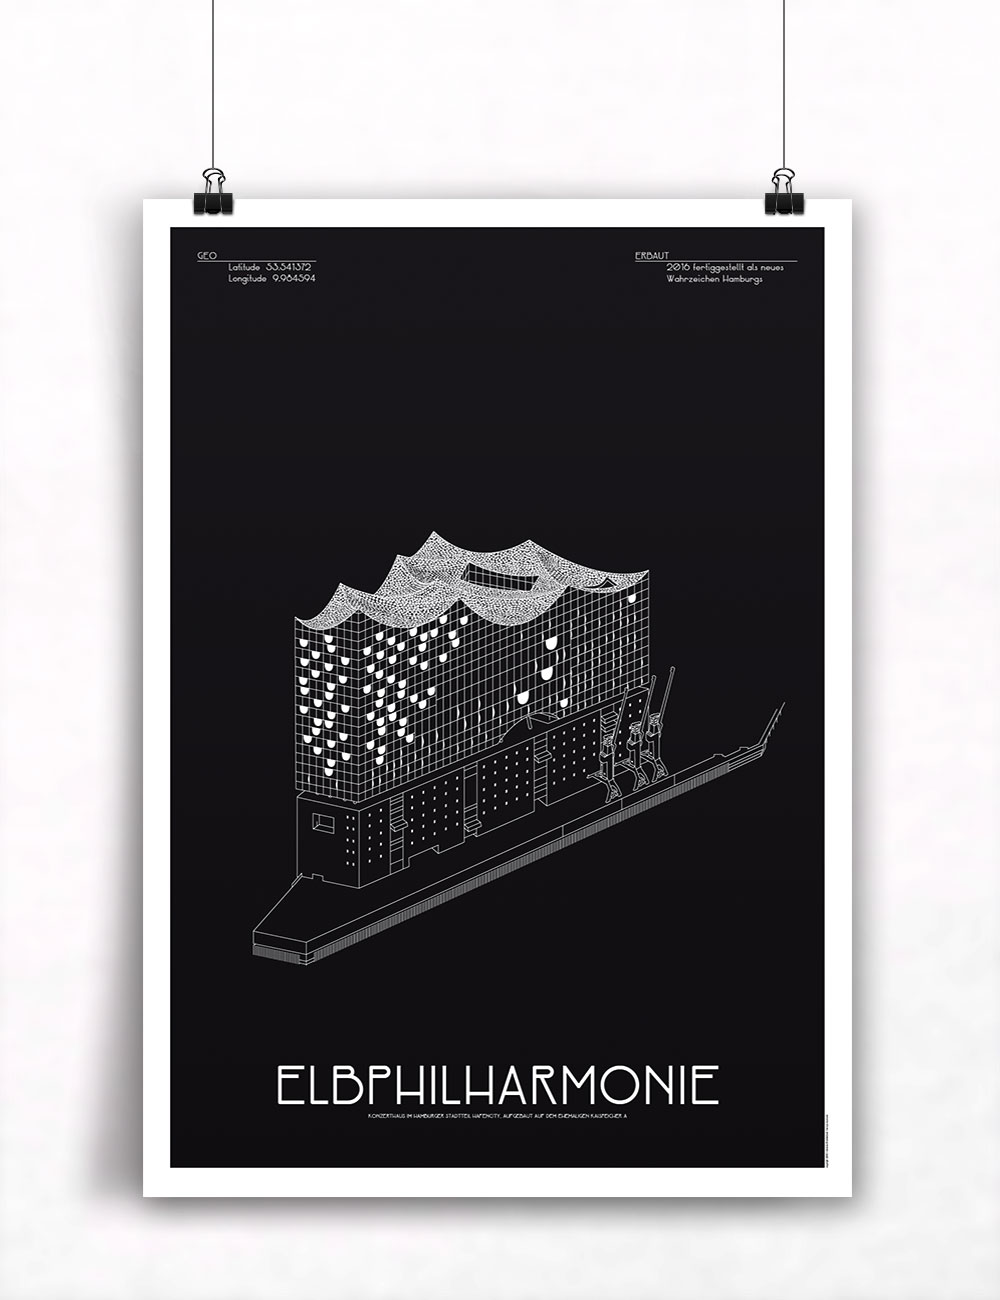 Elbphilharmonie hamburg poster architektur illustration - Schwarz architektur ...